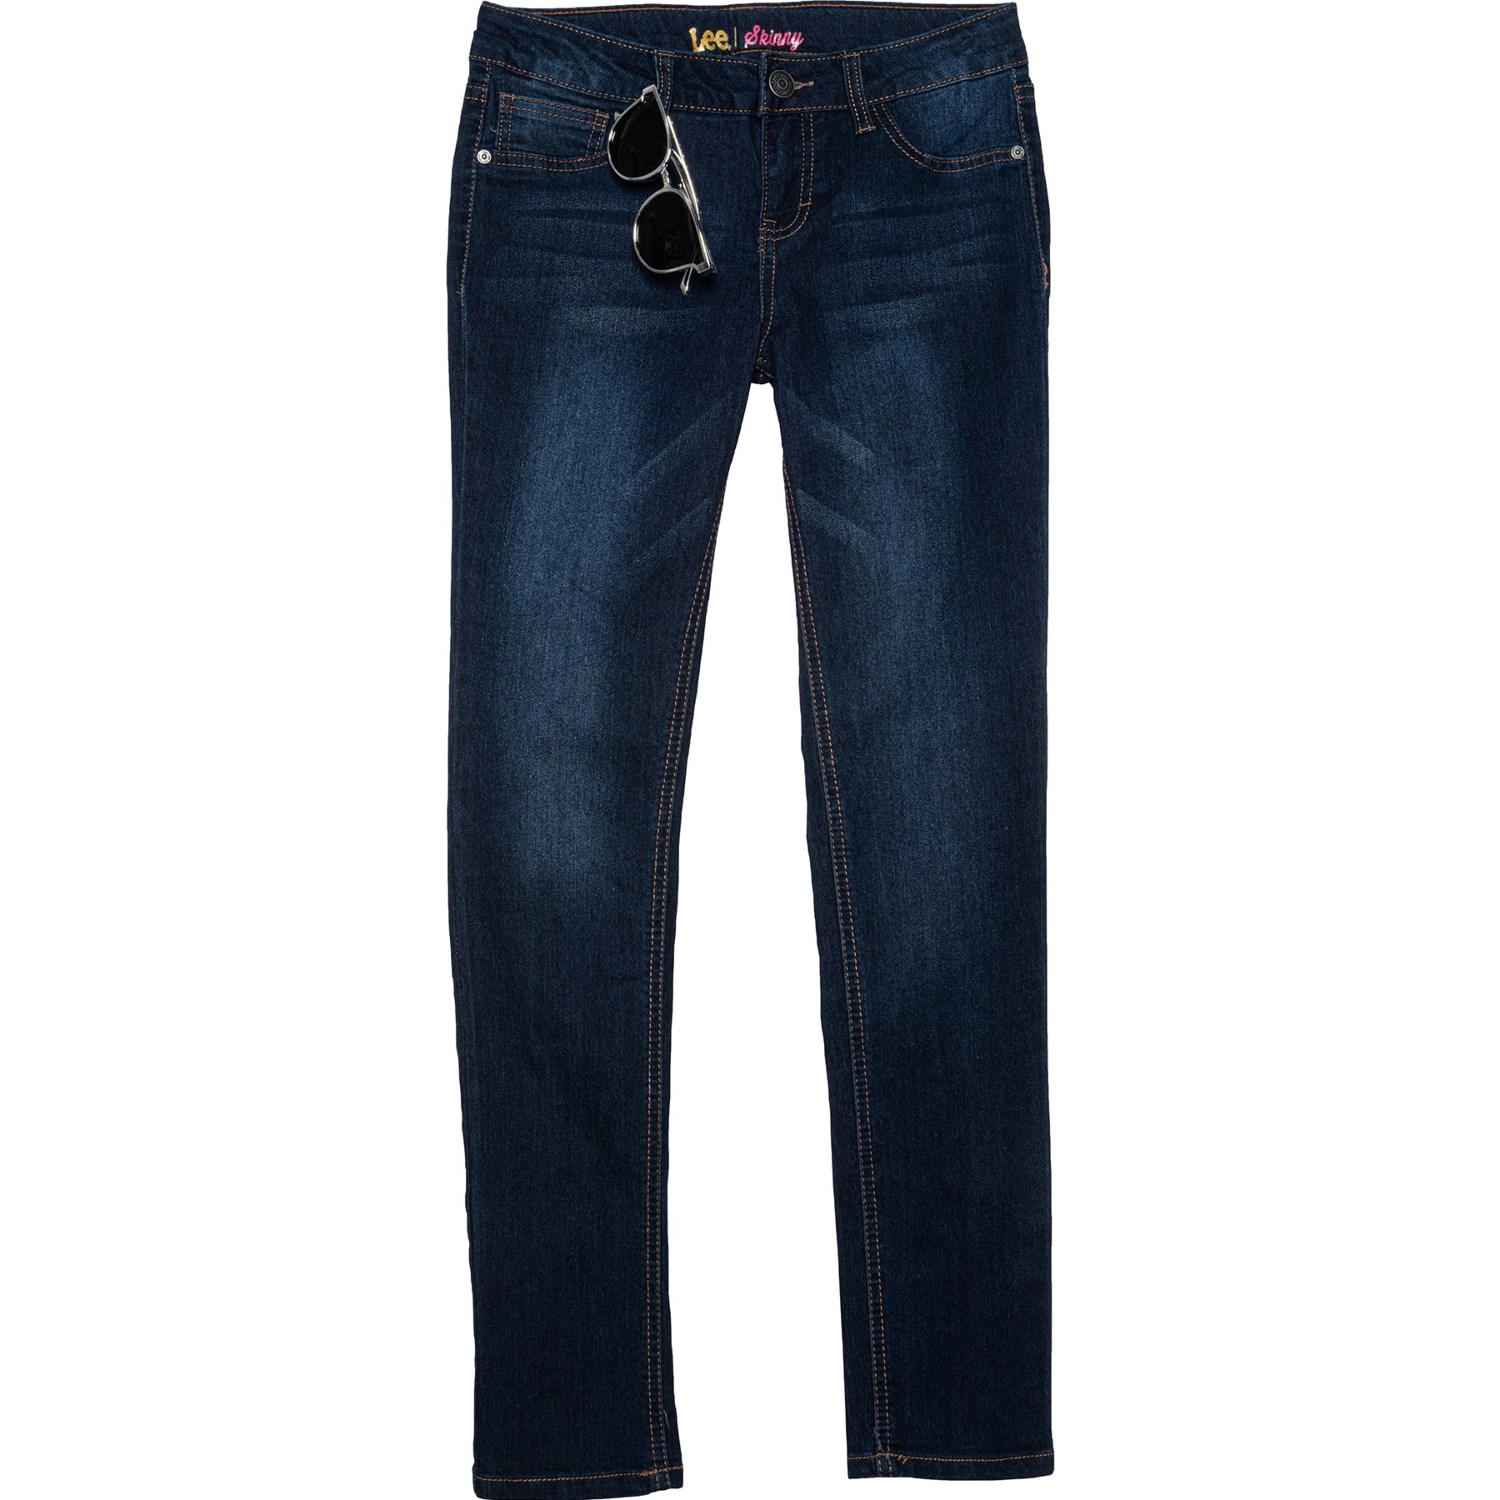 Super Stretch Fashion Jeans with Studs Juniors Girls Jeans LEE Skinny Jeans for Teen Girls